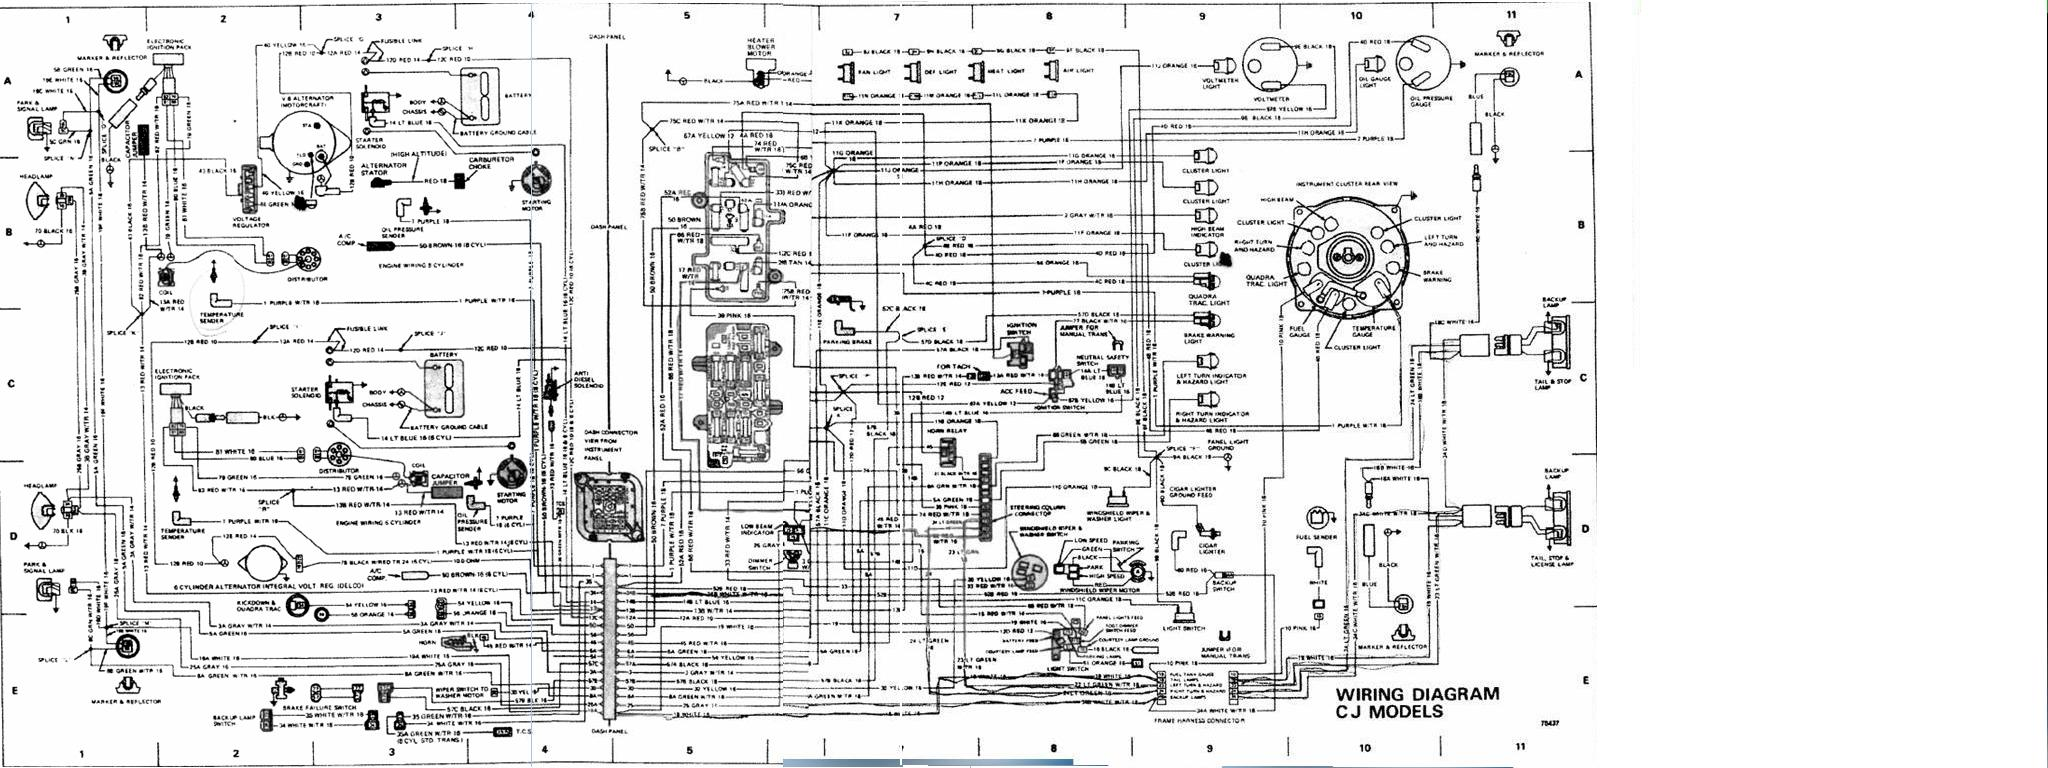 76 Jeep Cj5 Wiring Diagram Schematic - Wiring Diagrams Lol Cj V Wiring Diagram on camaro wiring diagram, cj5 hardtop, defender 90 wiring diagram, cj7 wiring diagram, ramcharger wiring diagram, land cruiser wiring diagram, yukon wiring diagram, mustang wiring diagram, renegade wiring diagram, regal wiring diagram, grand wagoneer wiring diagram, amx wiring diagram, cj3b wiring diagram, cj2a wiring diagram, simple chopper wiring diagram, concord wiring diagram, m38a1 wiring diagram, yj wiring diagram, willys wiring diagram,